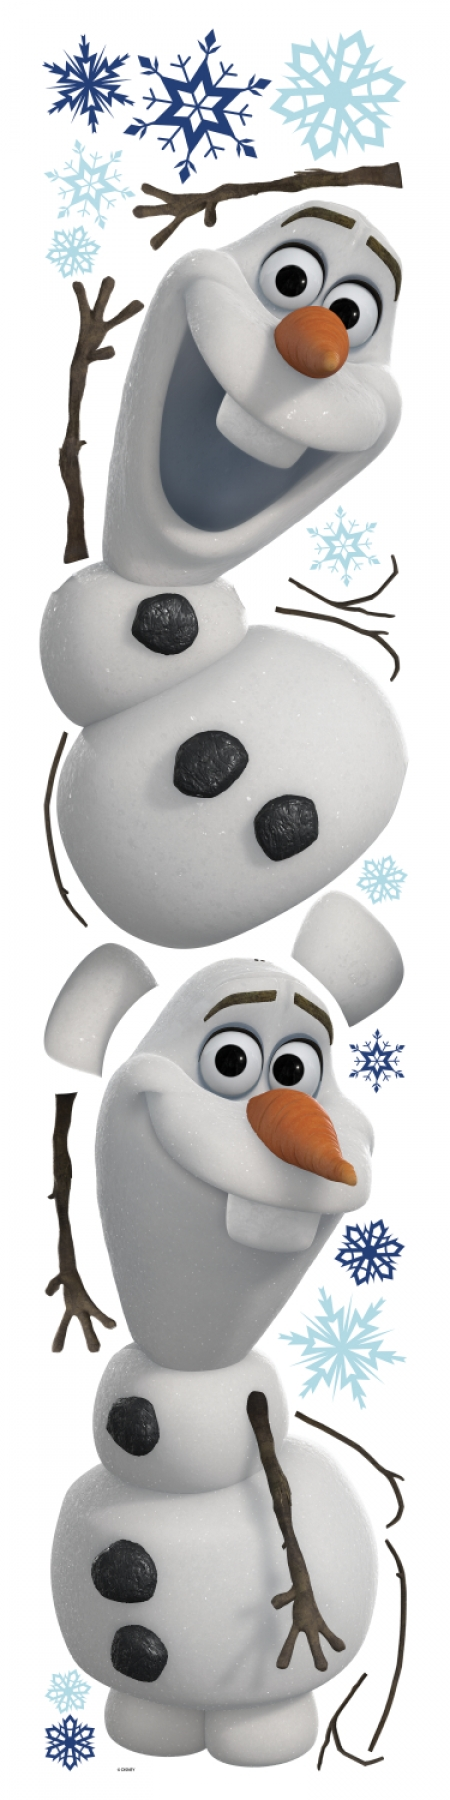 RMK2372SCS Frozen Olaf The Snow Man Wall Stickers 450x1800